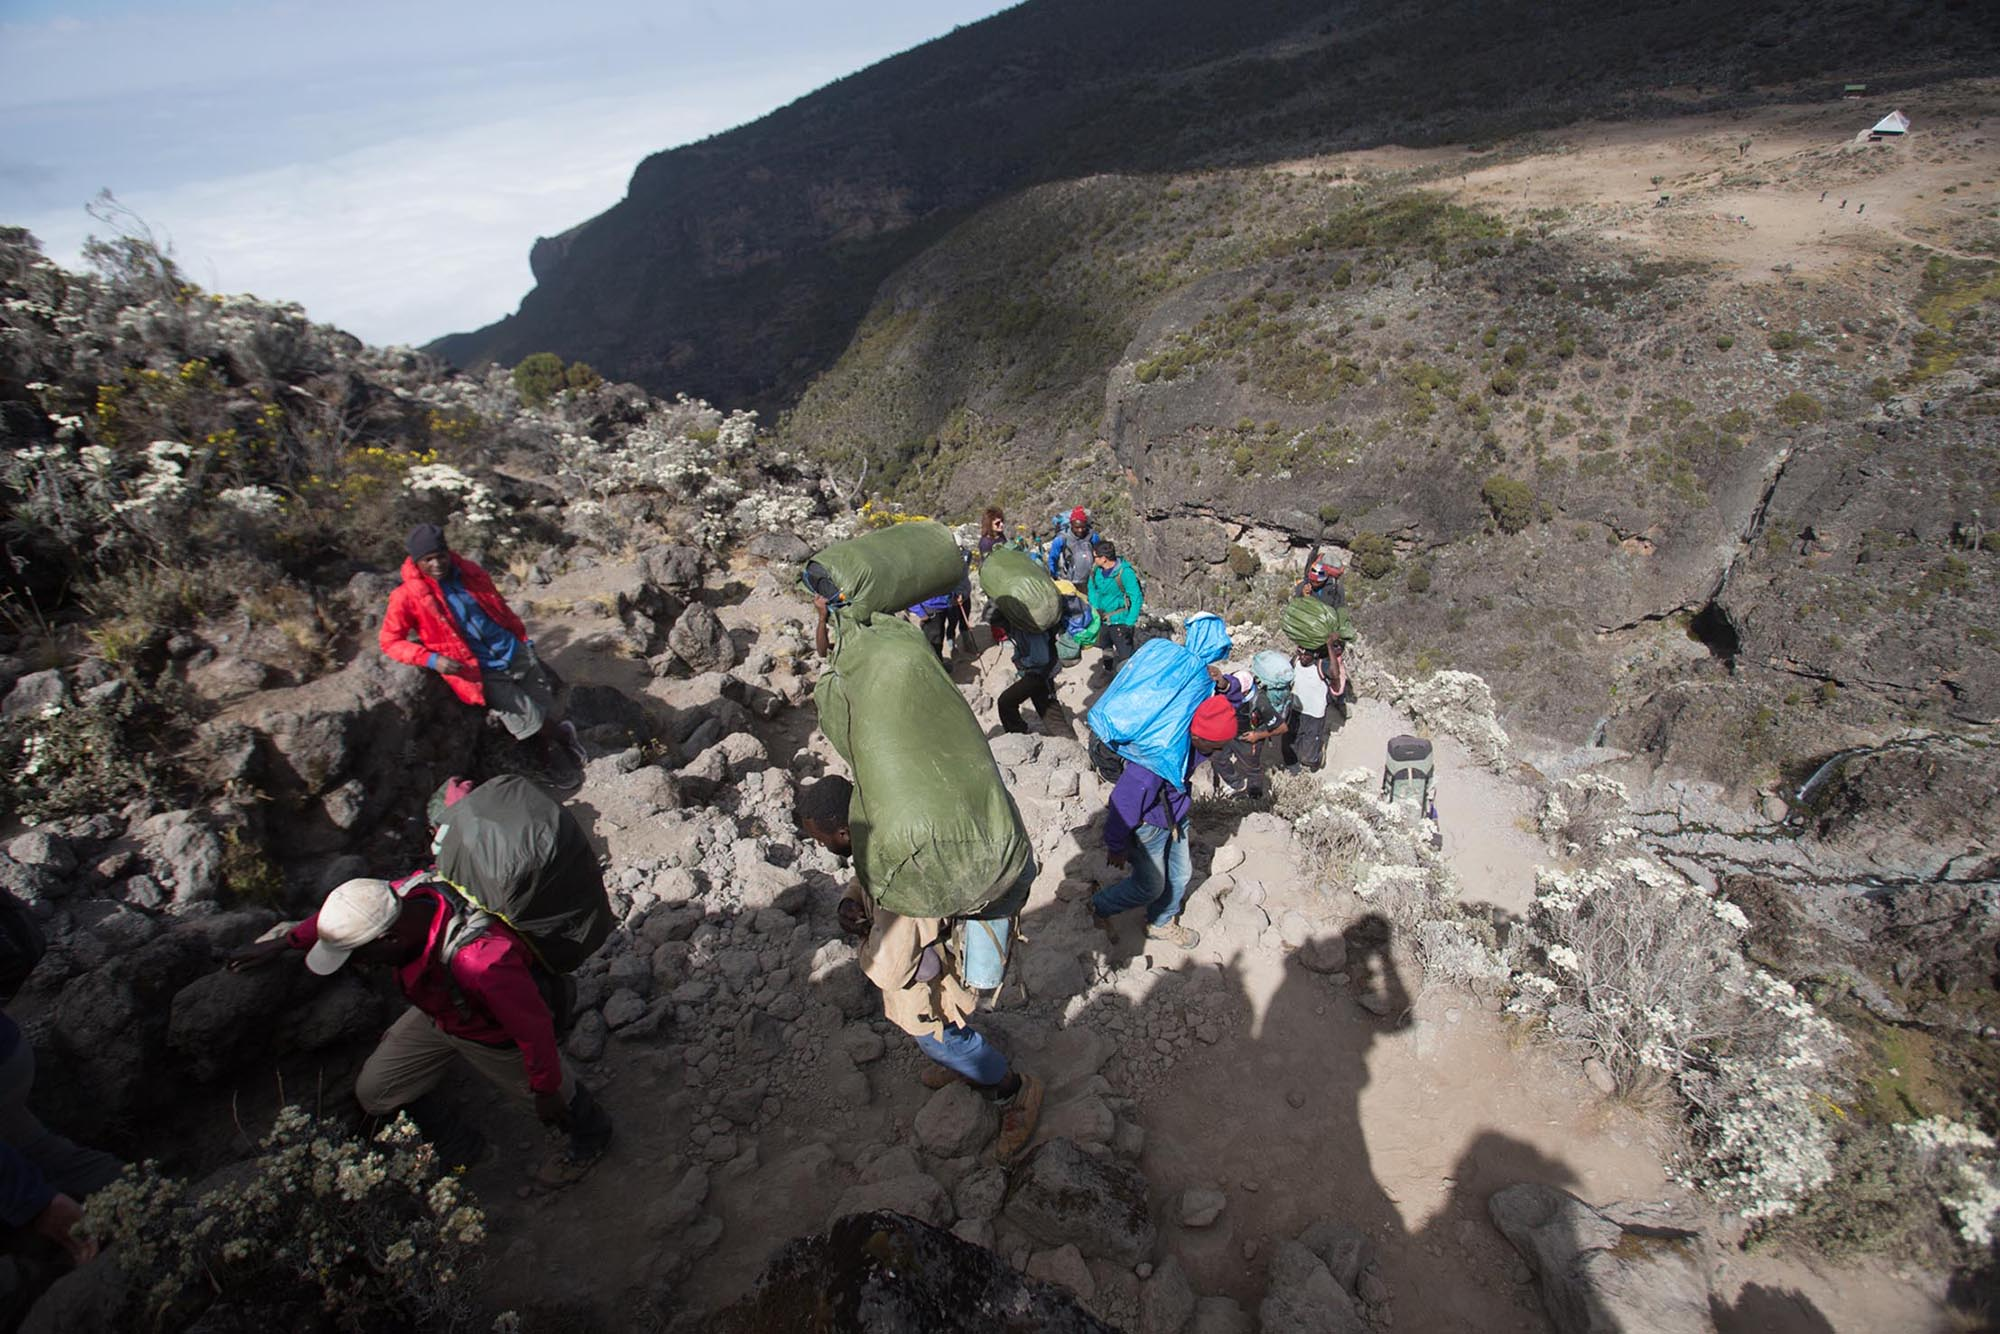 The Follow Alice team climbing and Tipping on Kilimanjaro